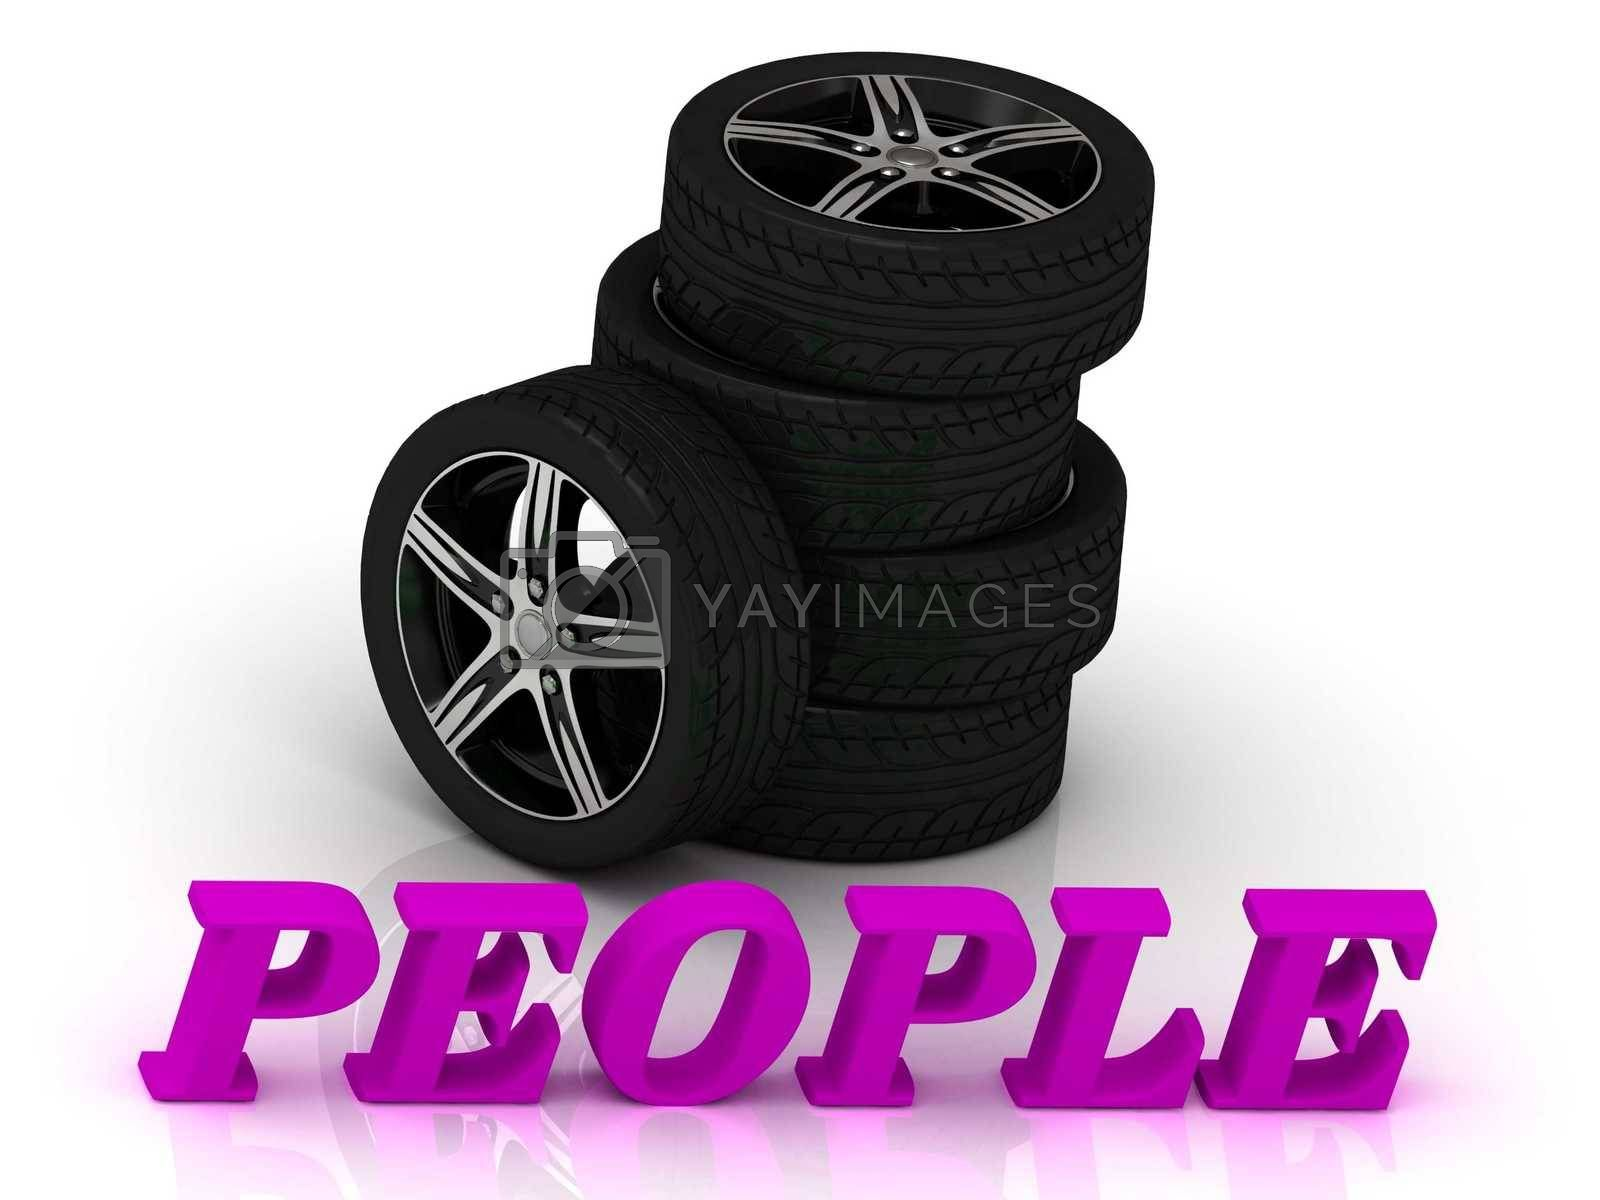 PEOPLE- bright letters and rims mashine black wheels on a white background